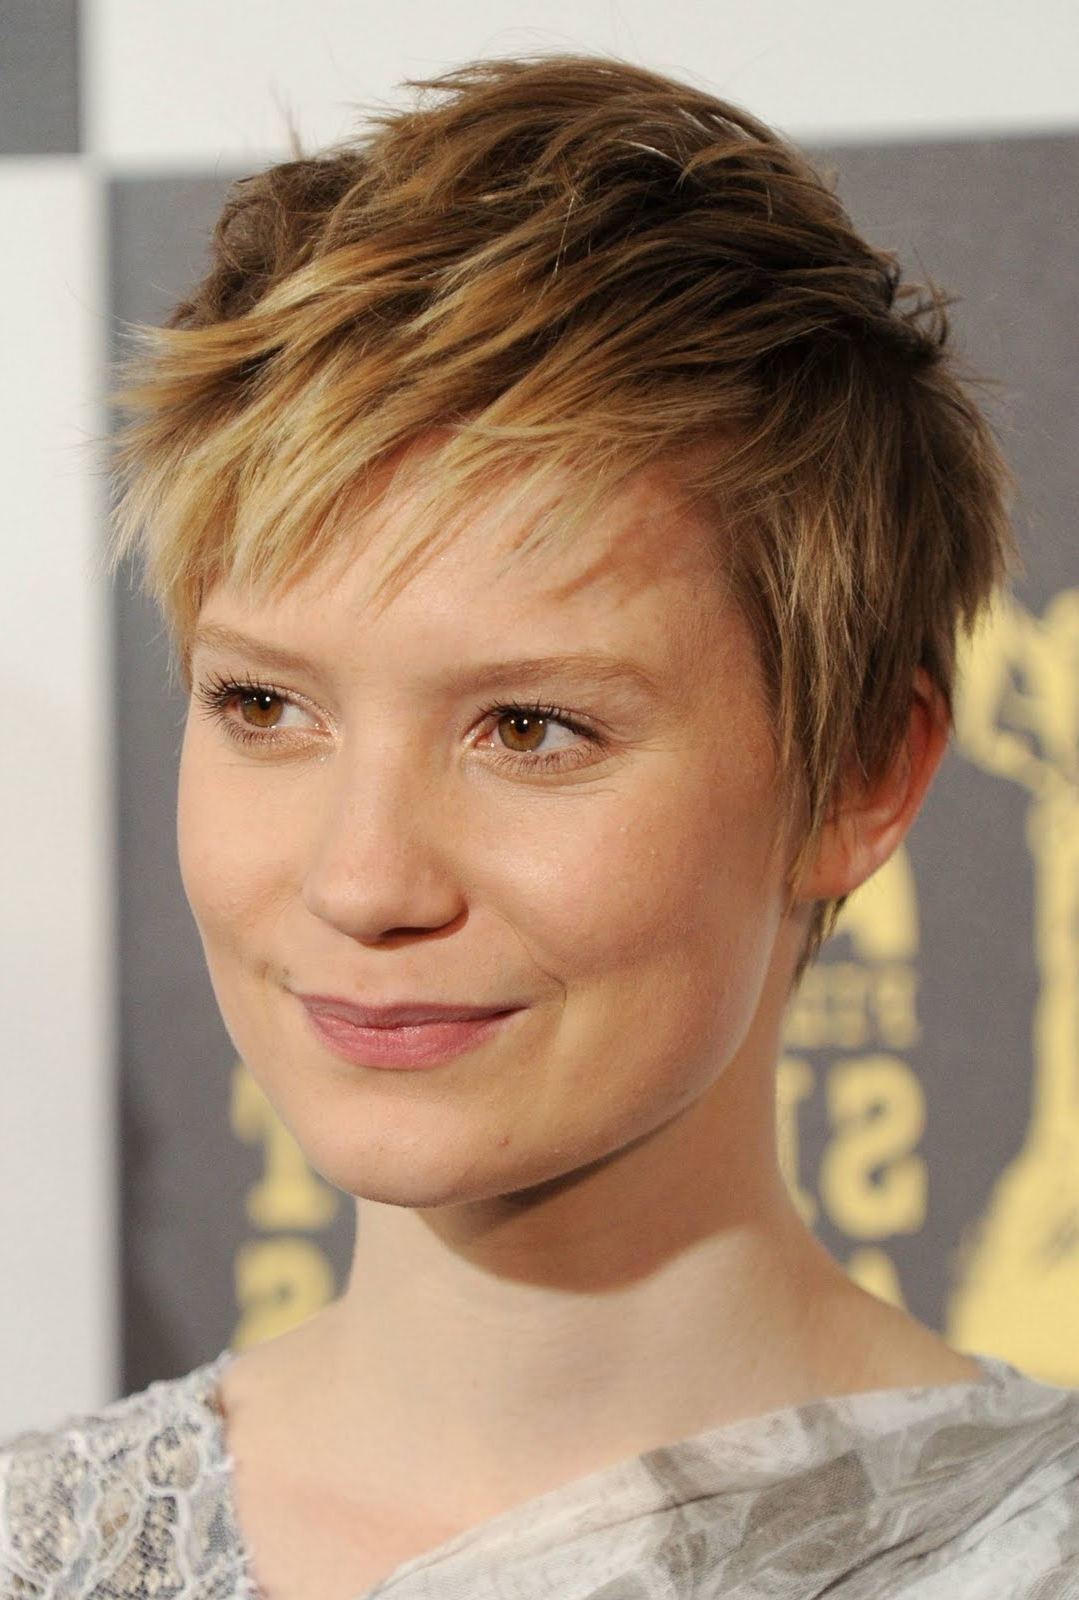 Hairstyles For Thin Hair Women Short Pixie Haircuts With Curly Hair Regarding Most Current Pixie Hairstyles For Thin Hair (View 6 of 15)